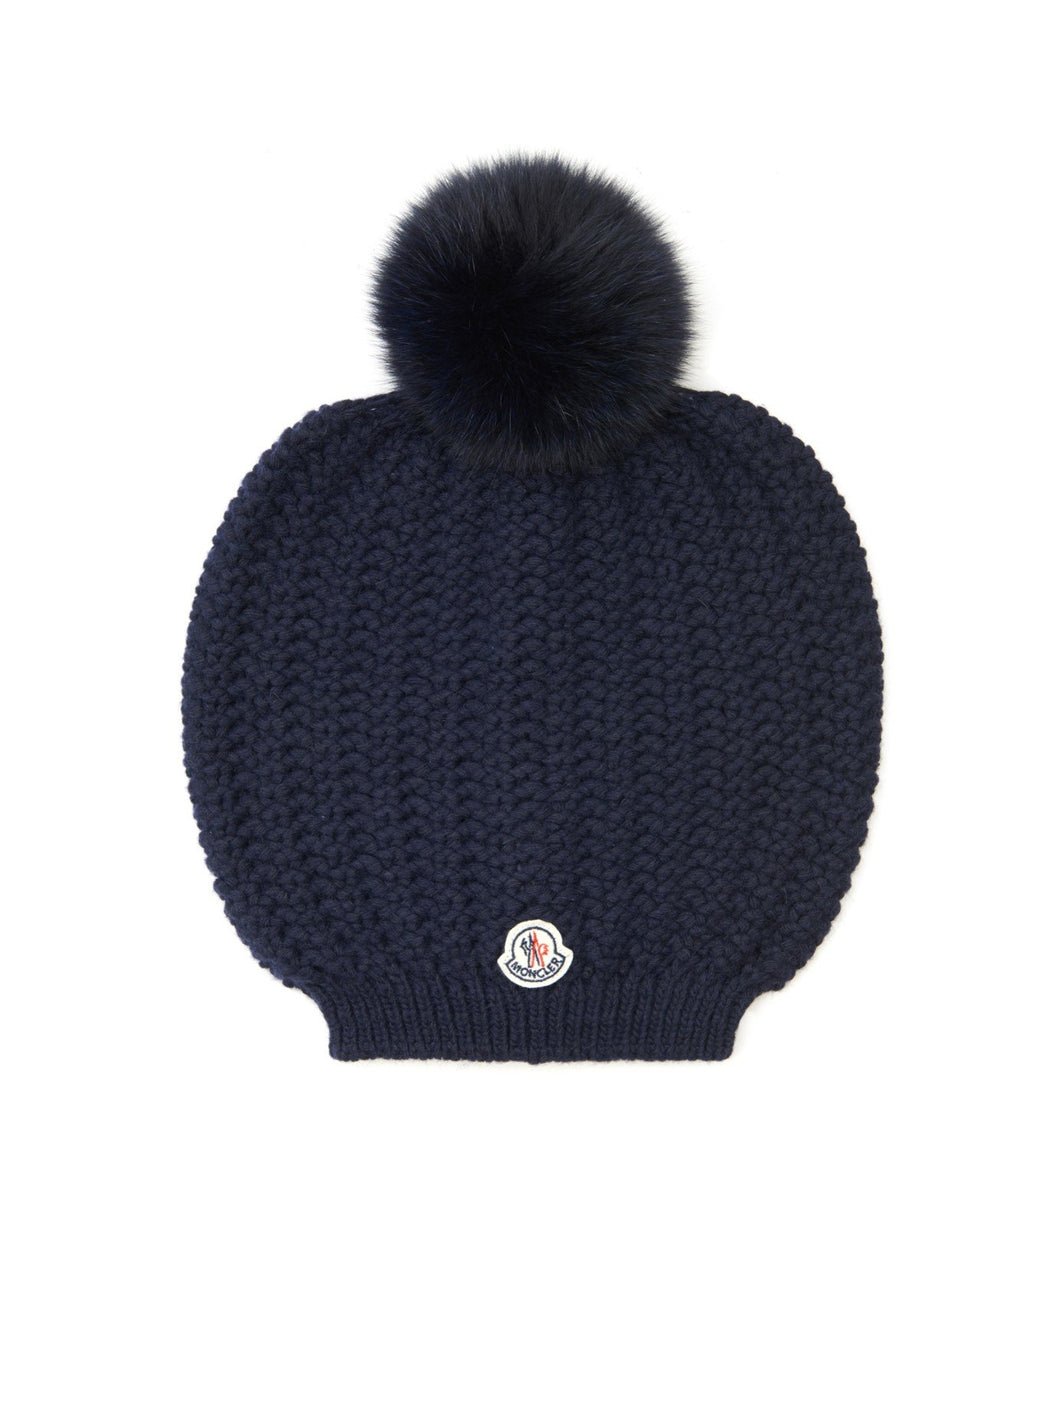 Moncler Woman's Blue Knit Pom Pom Beanie Hat - Vancelette Global Art Acquisitions